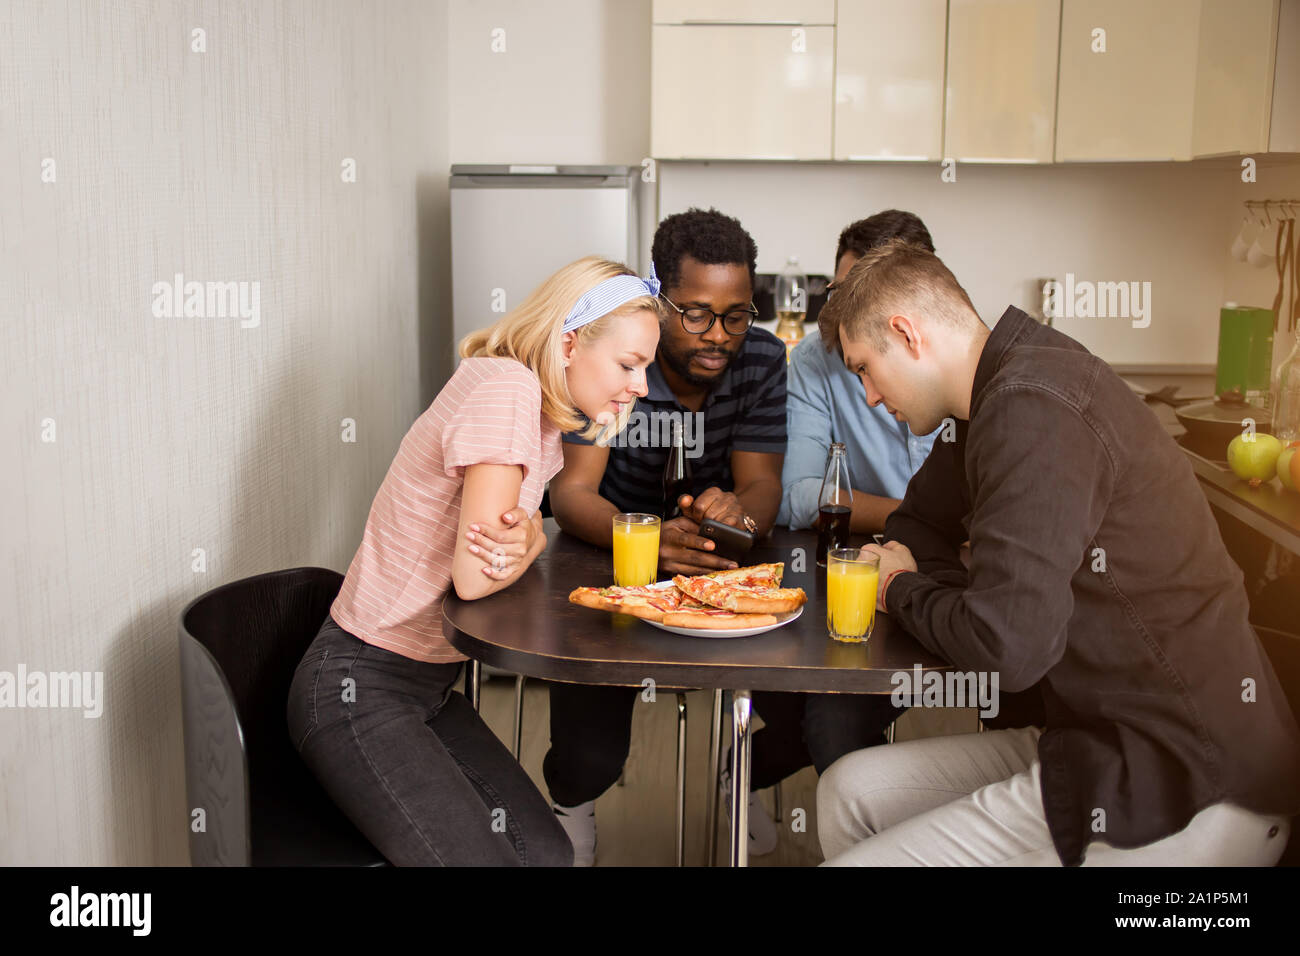 Shot of students sitting at table in hostel kitchen and looking at screen of mobile phone together. Friends watching something on smartphone while hav Stock Photo